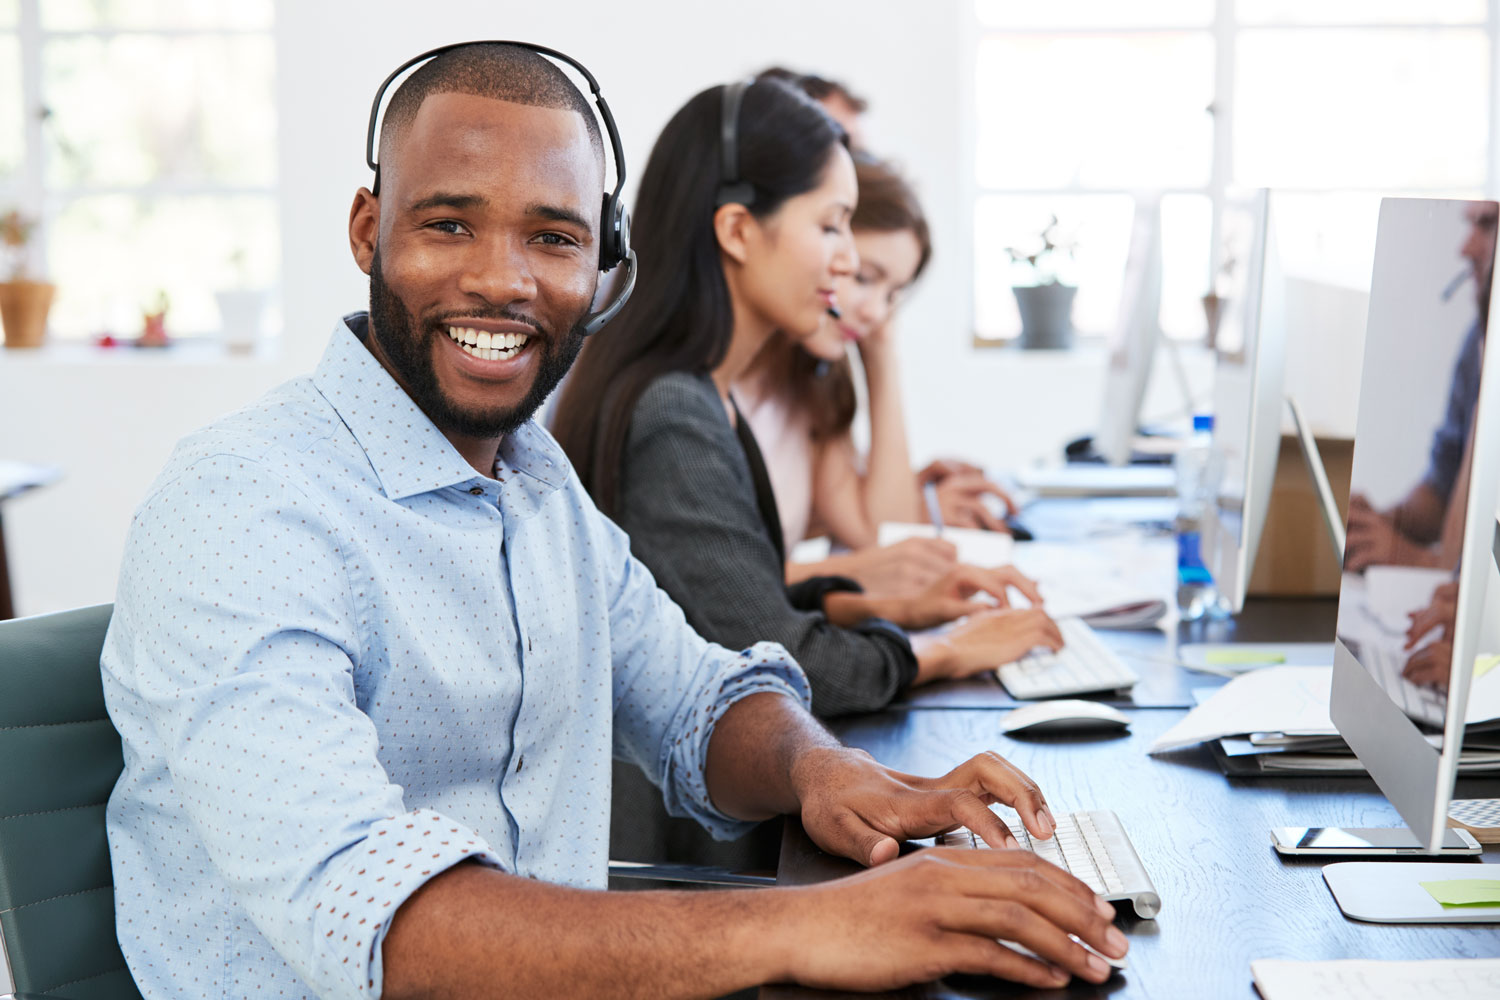 Young Customer Service Rep in Call Center